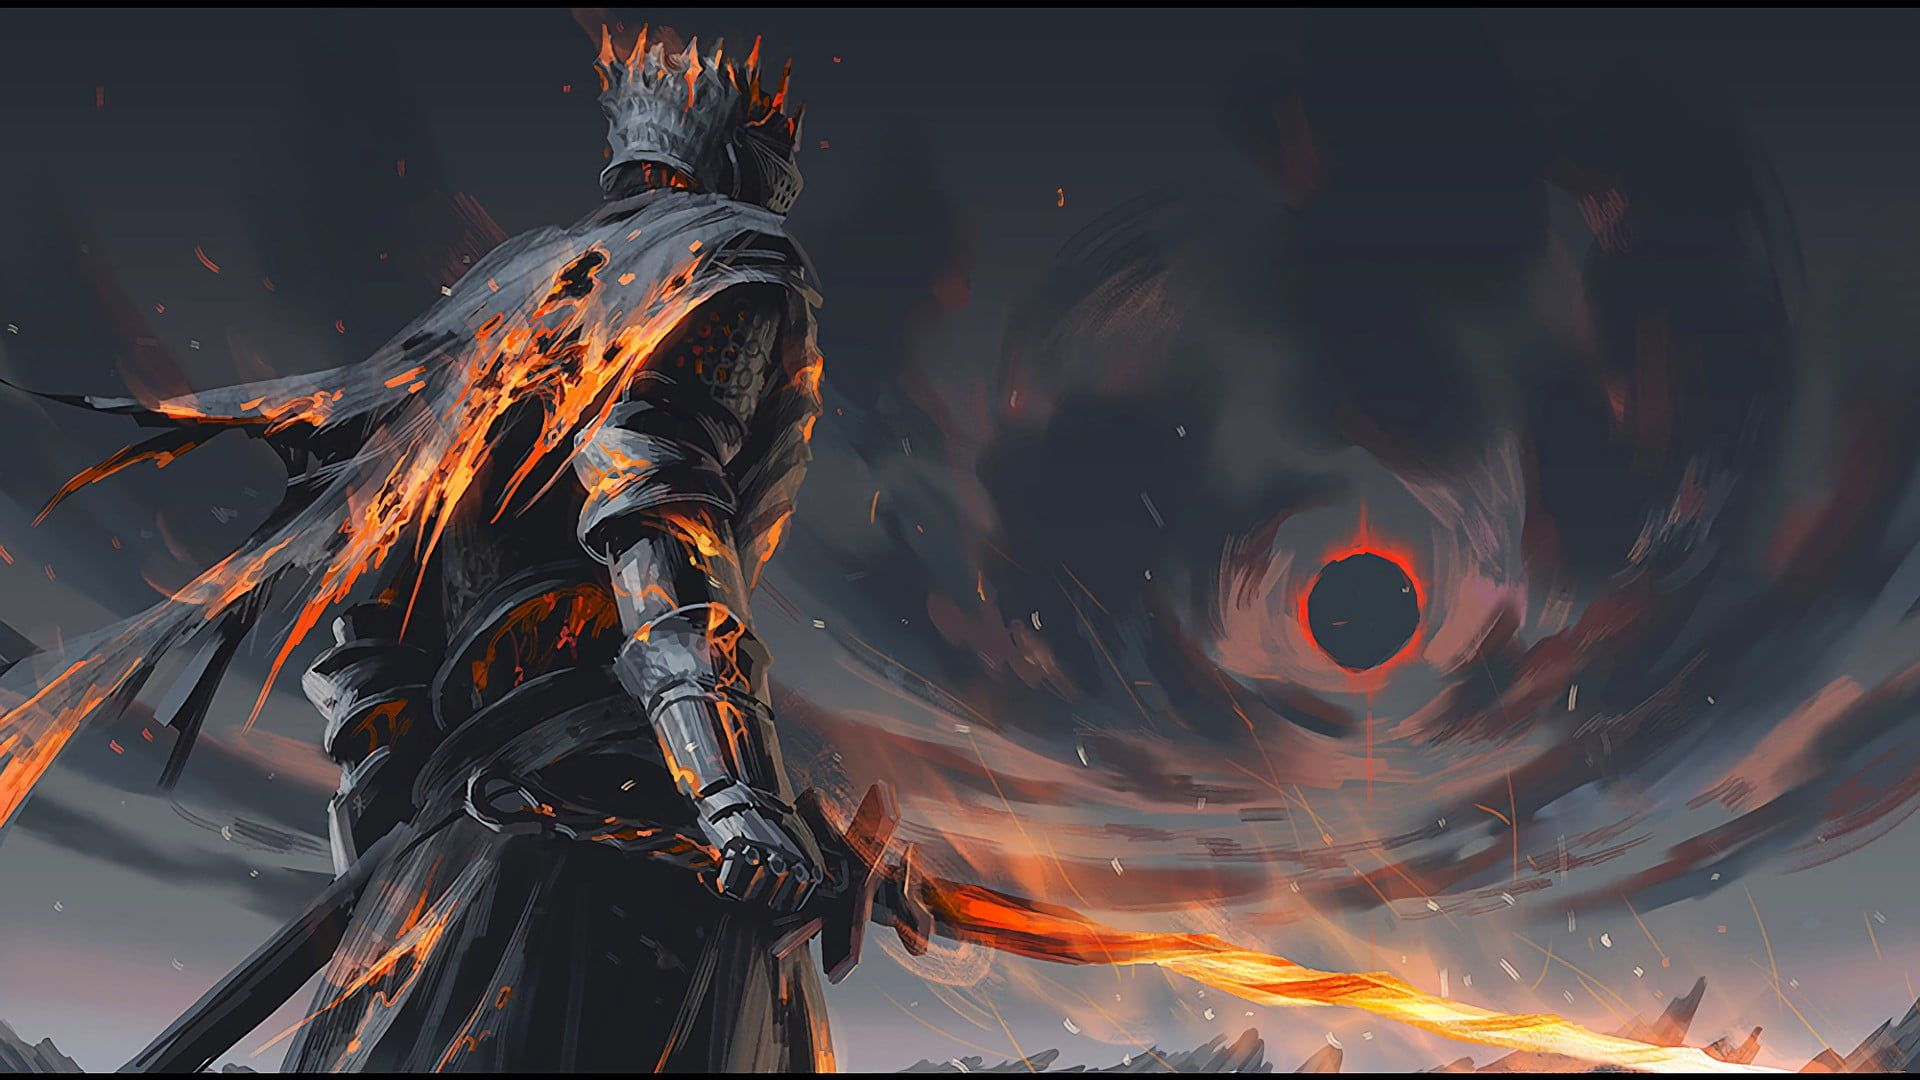 Warrior Holding Sword Wallpaper Video Game Screenshot Fantasy Art Warrior Dark Souls Iii Dark Souls Video Game Dark Souls Wallpaper Dark Souls Art Dark Souls